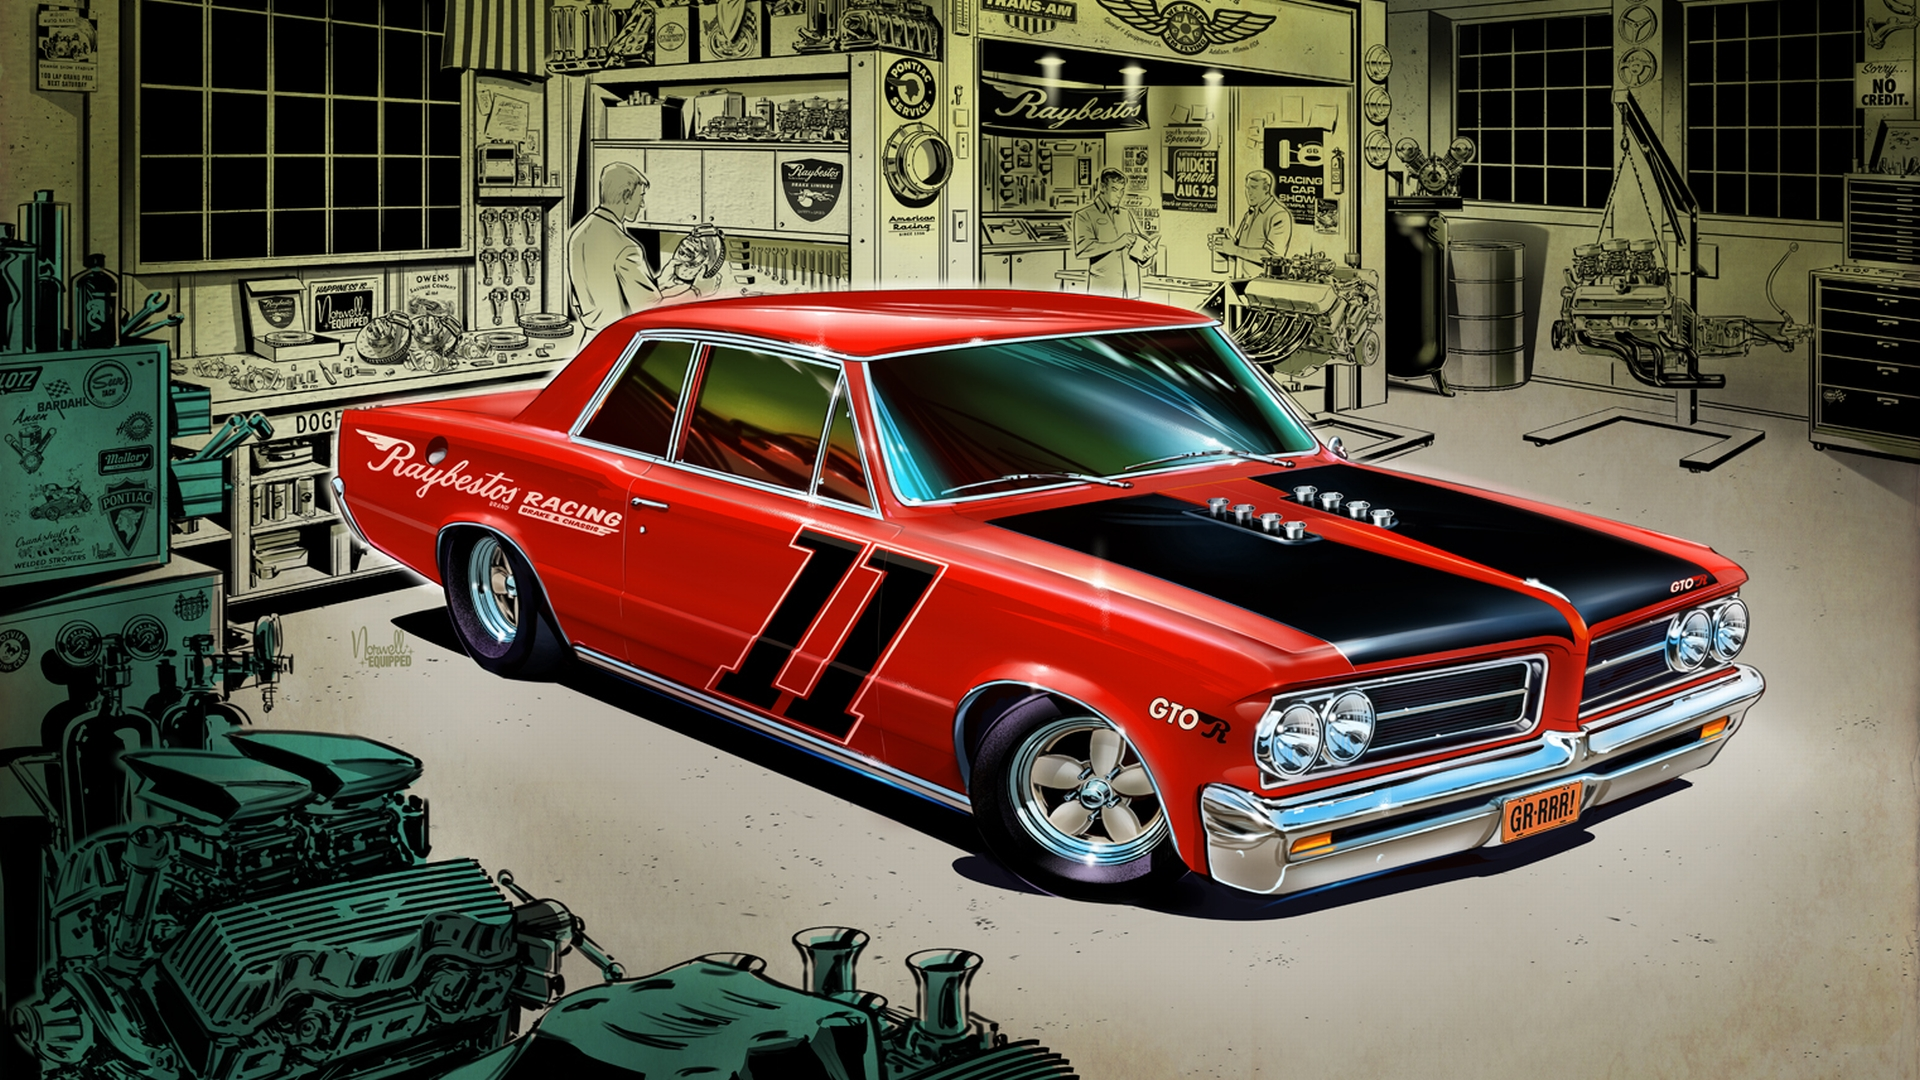 Pontiac GTO Full HD Wallpaper and Background Image | 1920x1080 | ID:143829